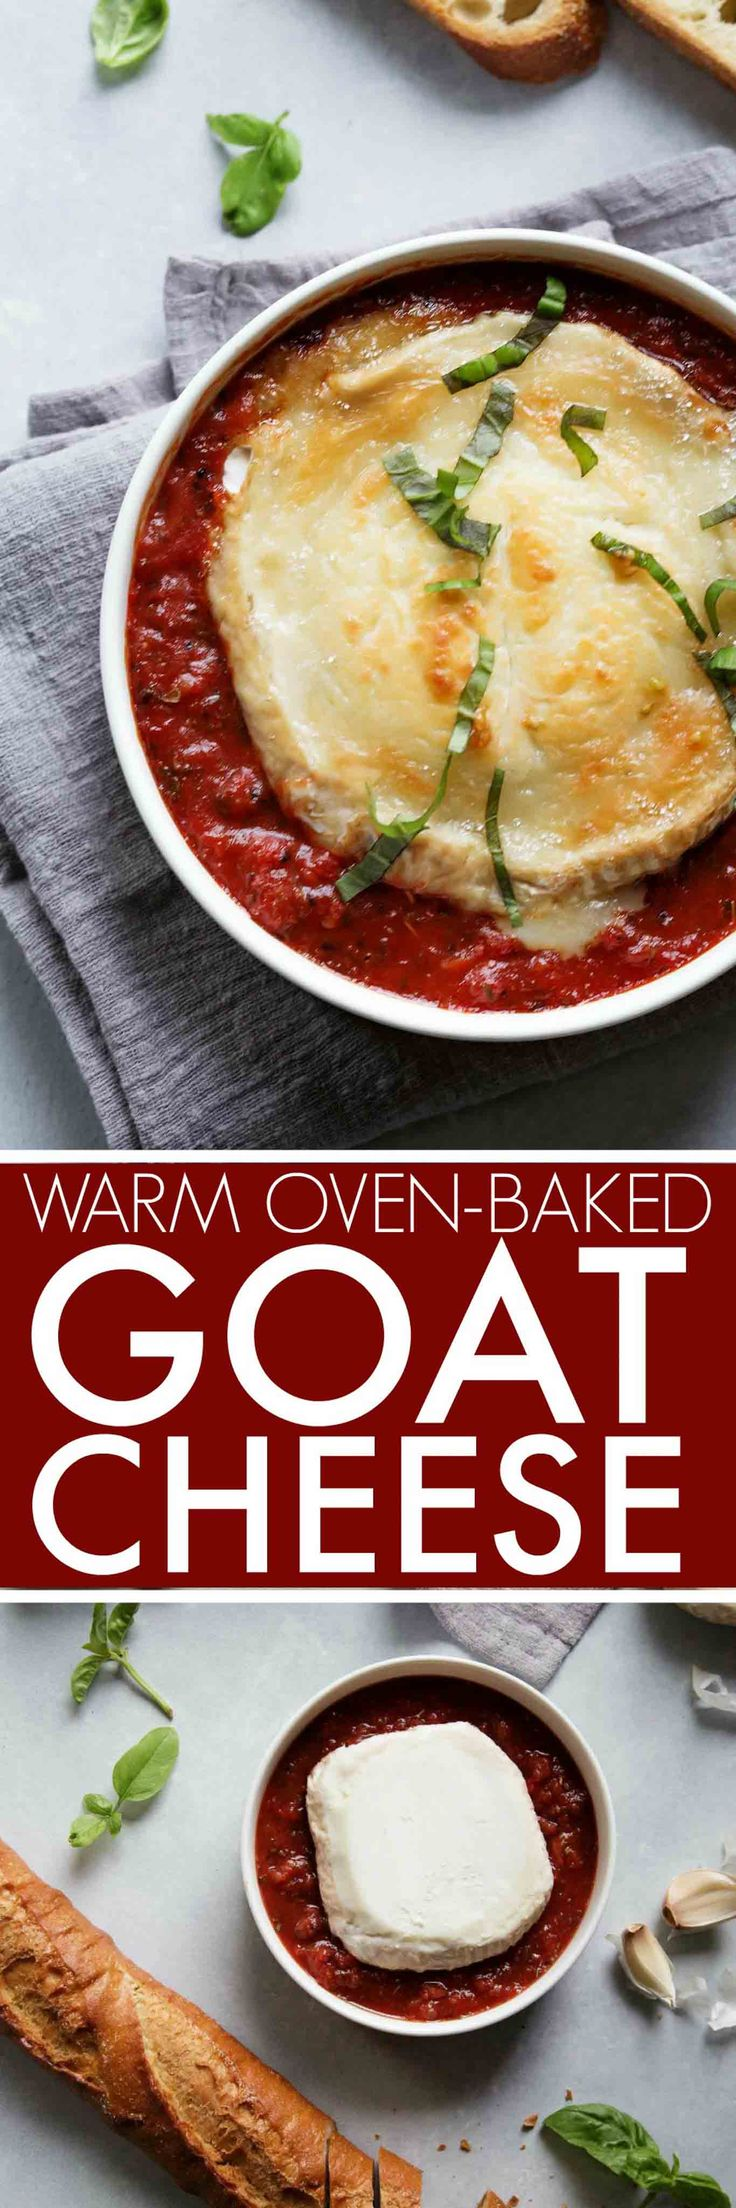 This baked goat cheese appetizer is super simple to throw together at the last minute. French goat cheese is baked in a marinara sauce until hot and bubbly - Perfect for spreading on crostini. #appetizer #easyappetizer #goatcheese #crostini #bakedgoatcheese  via @platingspairing